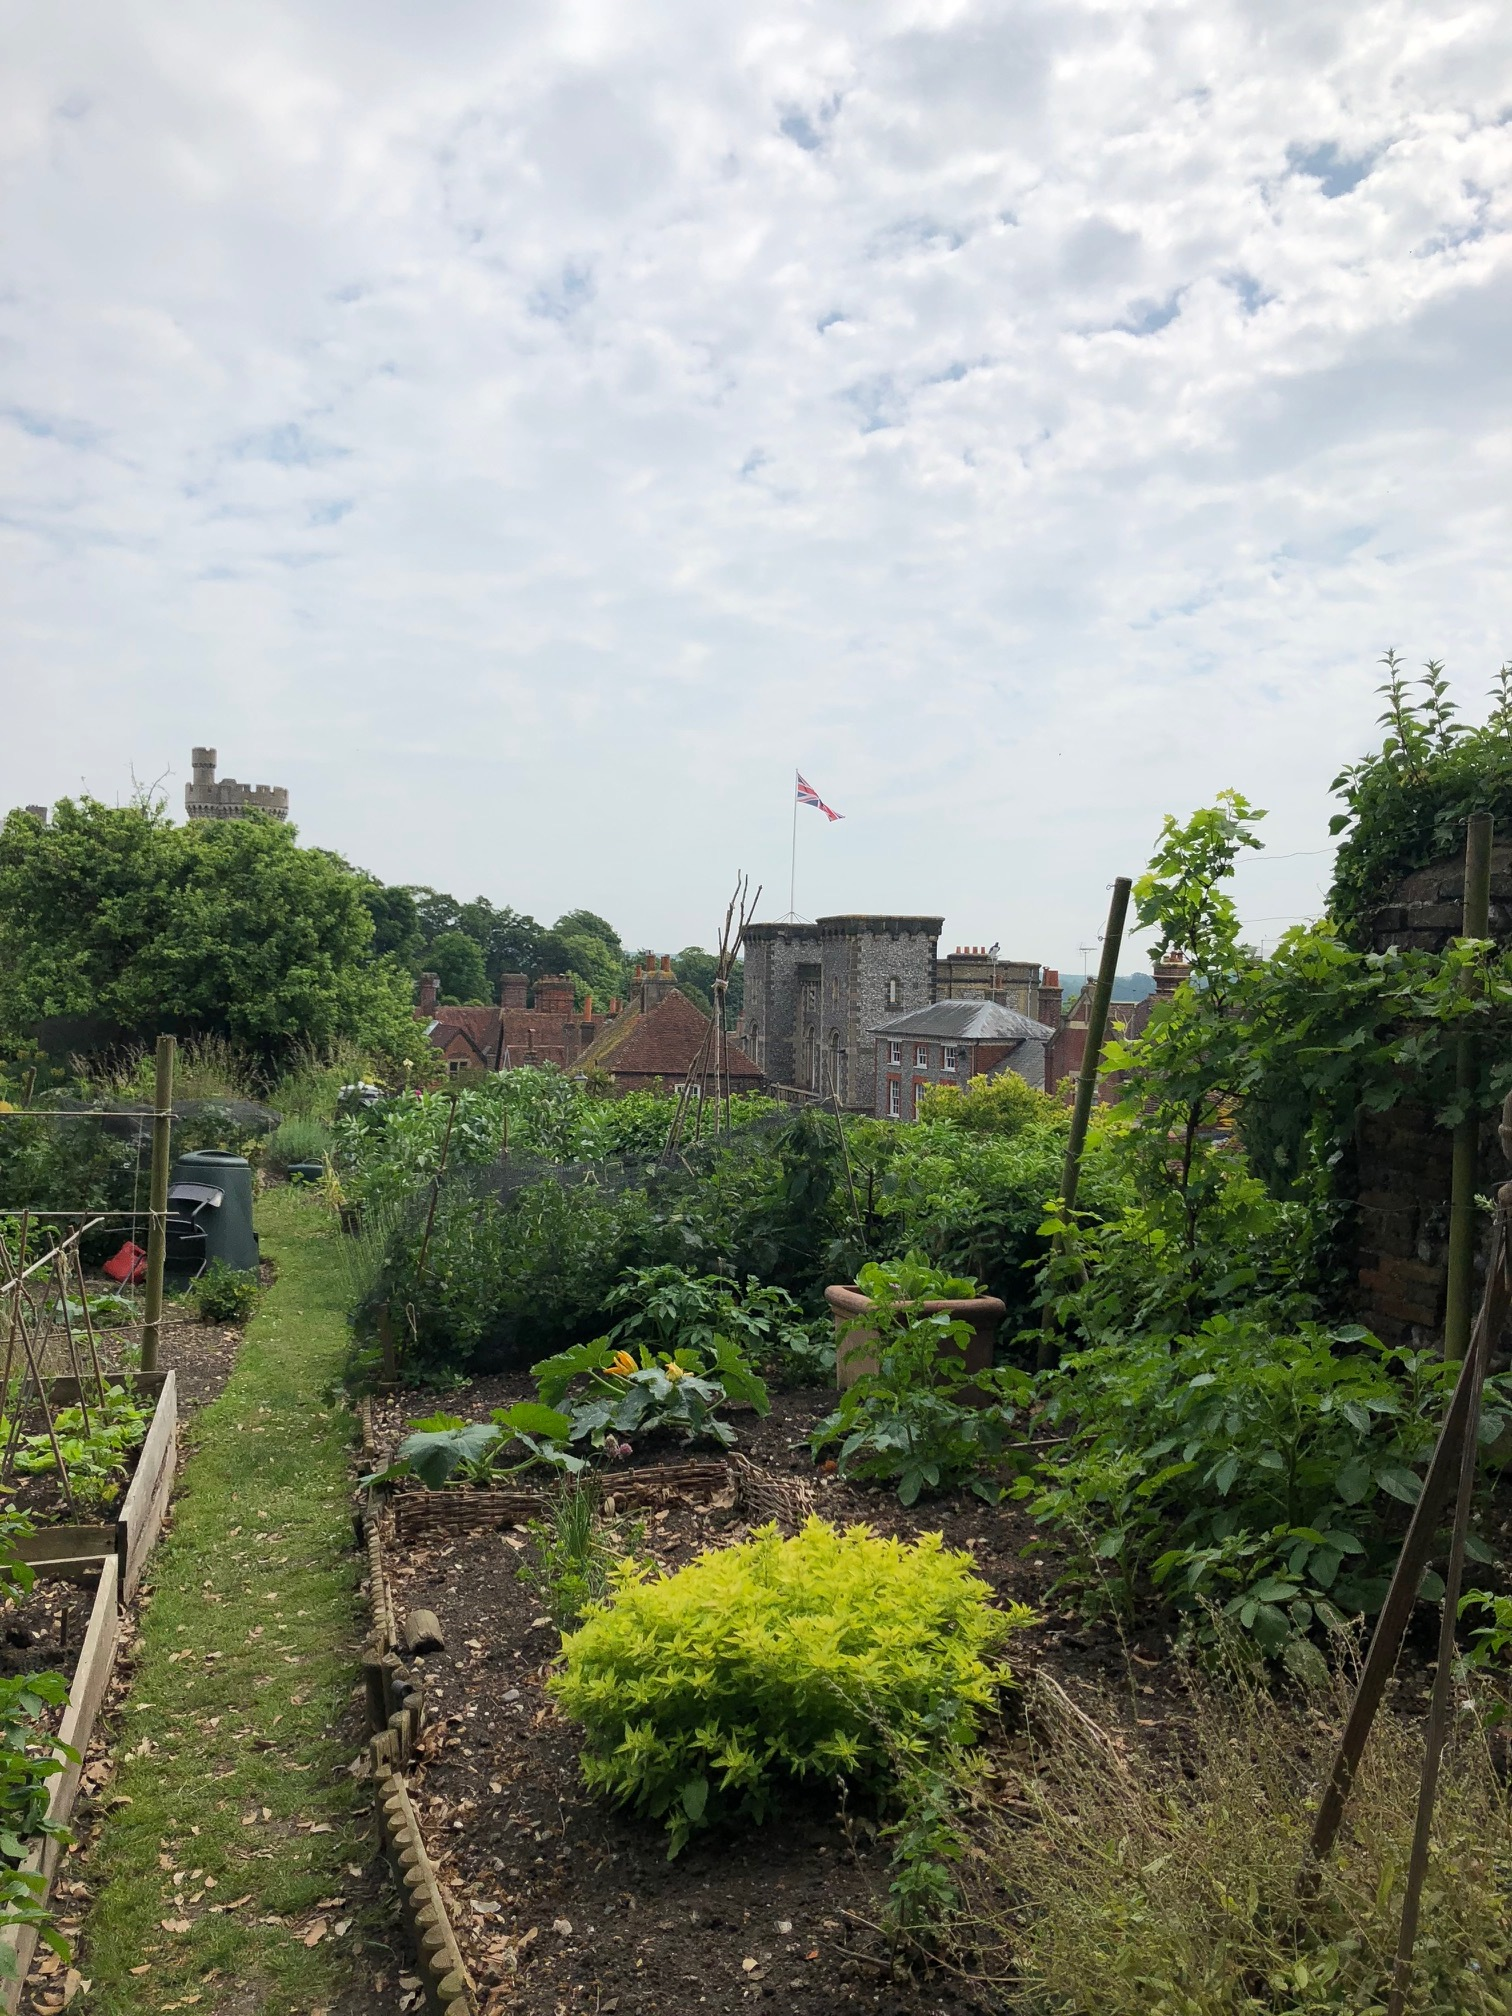 My friend  @felicity_lock 's allotment in Arundel. It wins the prettiest allotment with best view award from me.